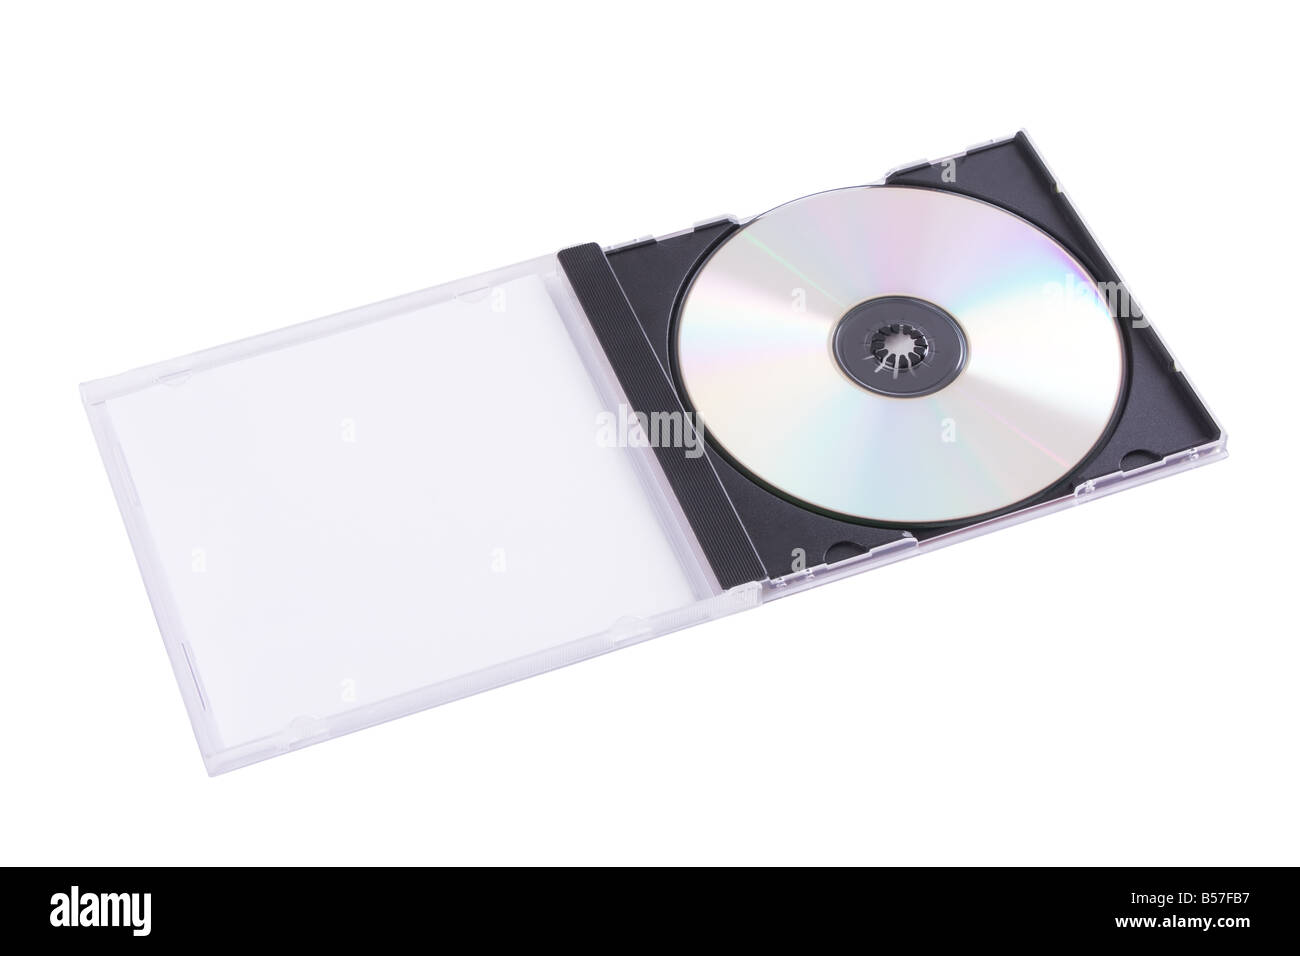 DVD case isolated on a white background - Stock Image